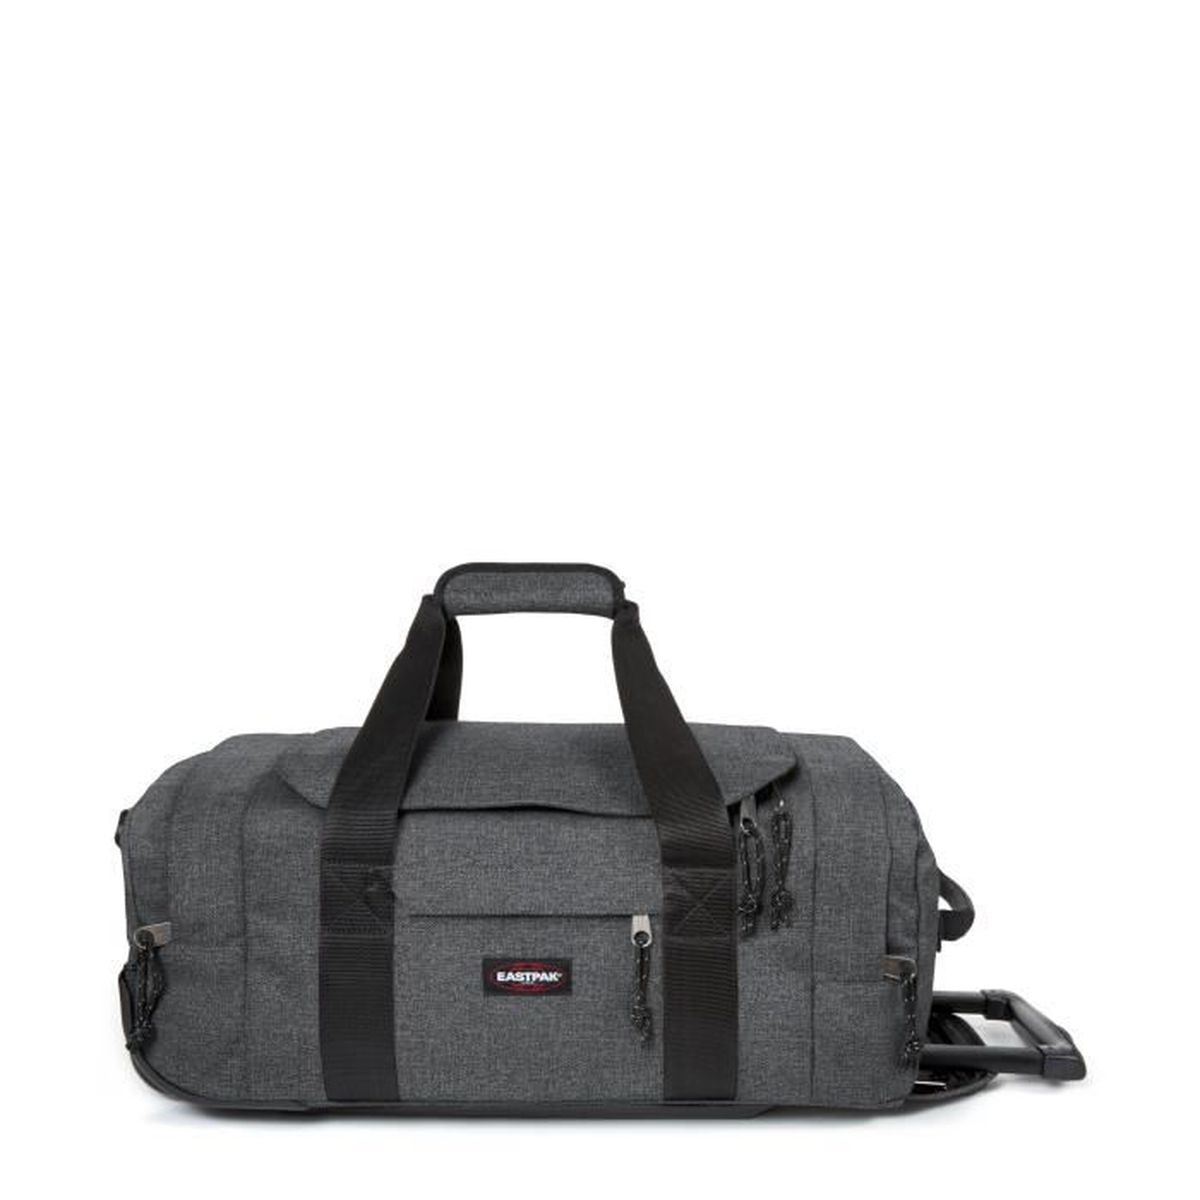 34 S Sac De Eastpak L 56 X Leatherface H Black Voyage Denim 26 77h R8RZBnUIx